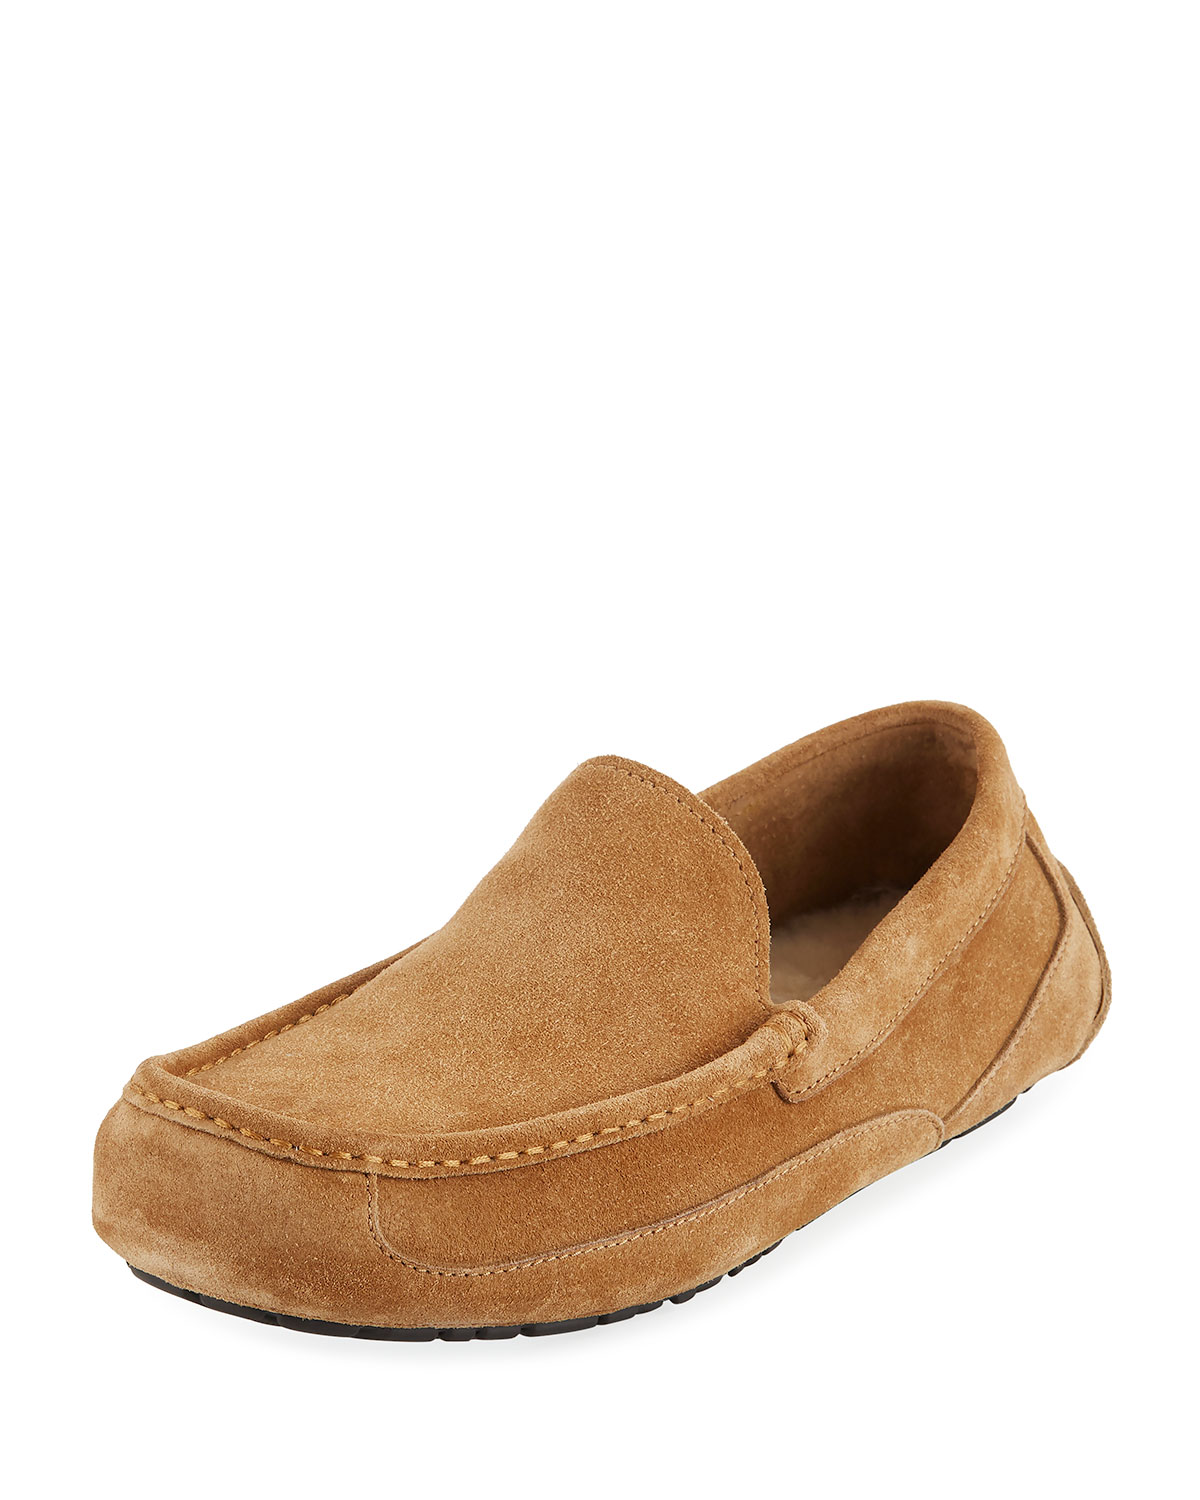 Men's Ascot Pinnacle Stead Suede Slippers